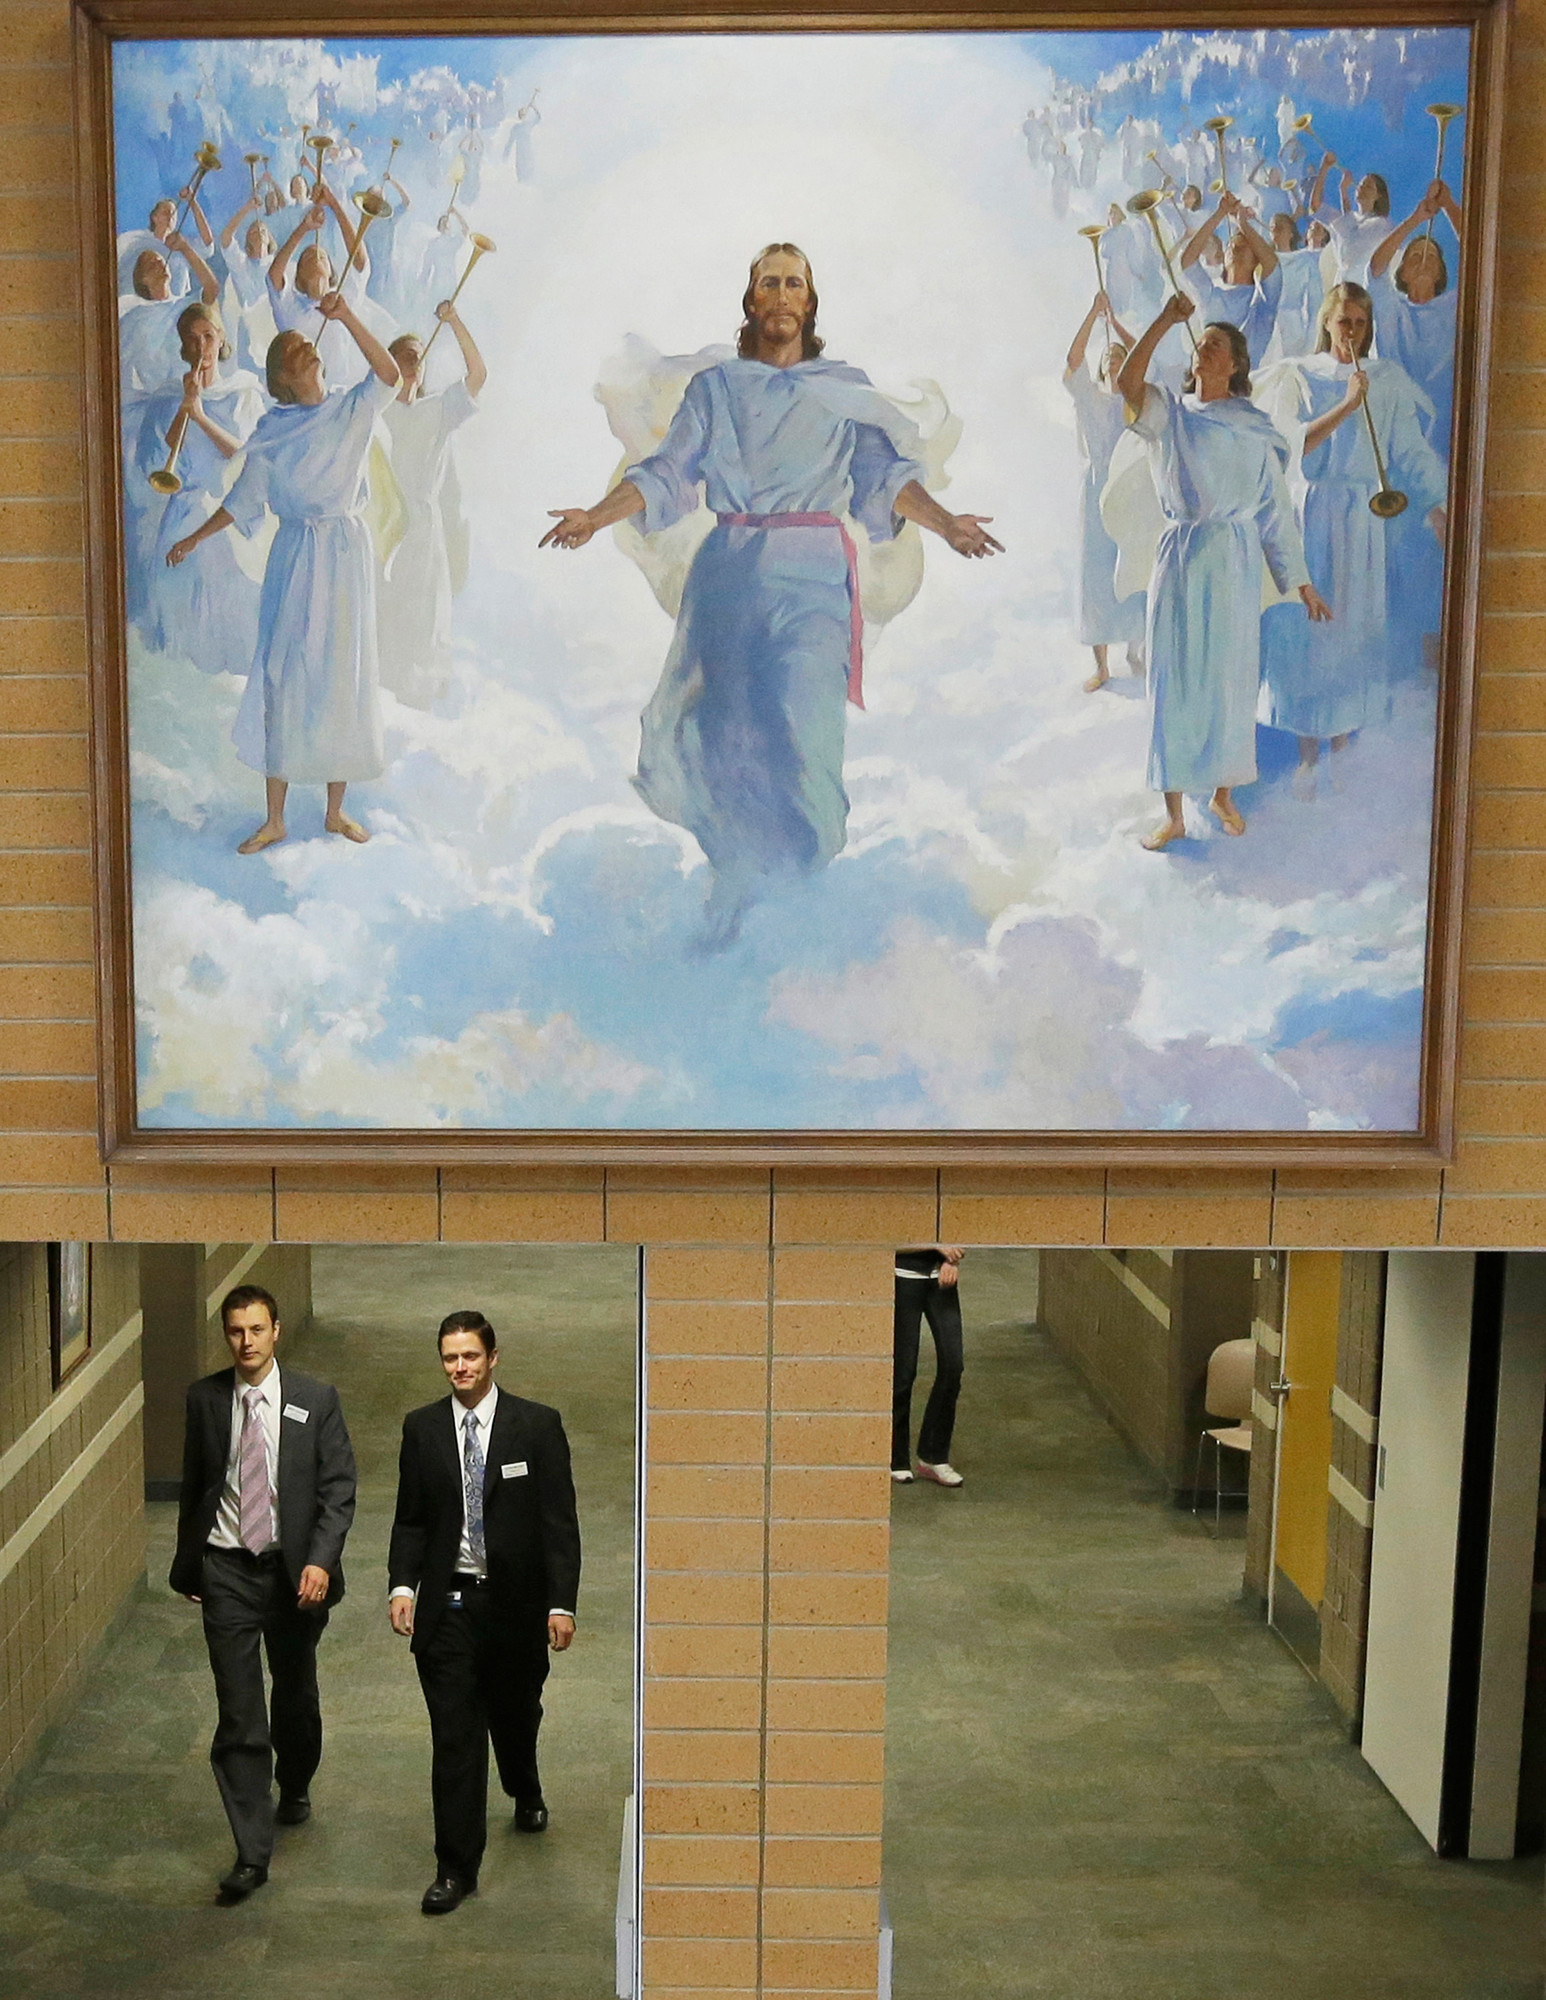 AP FILE PHOTOPeople walk through the halls at the Missionary Training Center in Provo, Utah. The Mormon church says it will let young members know where they're headed to serve their missions online instead of the traditional letters sent by mail.